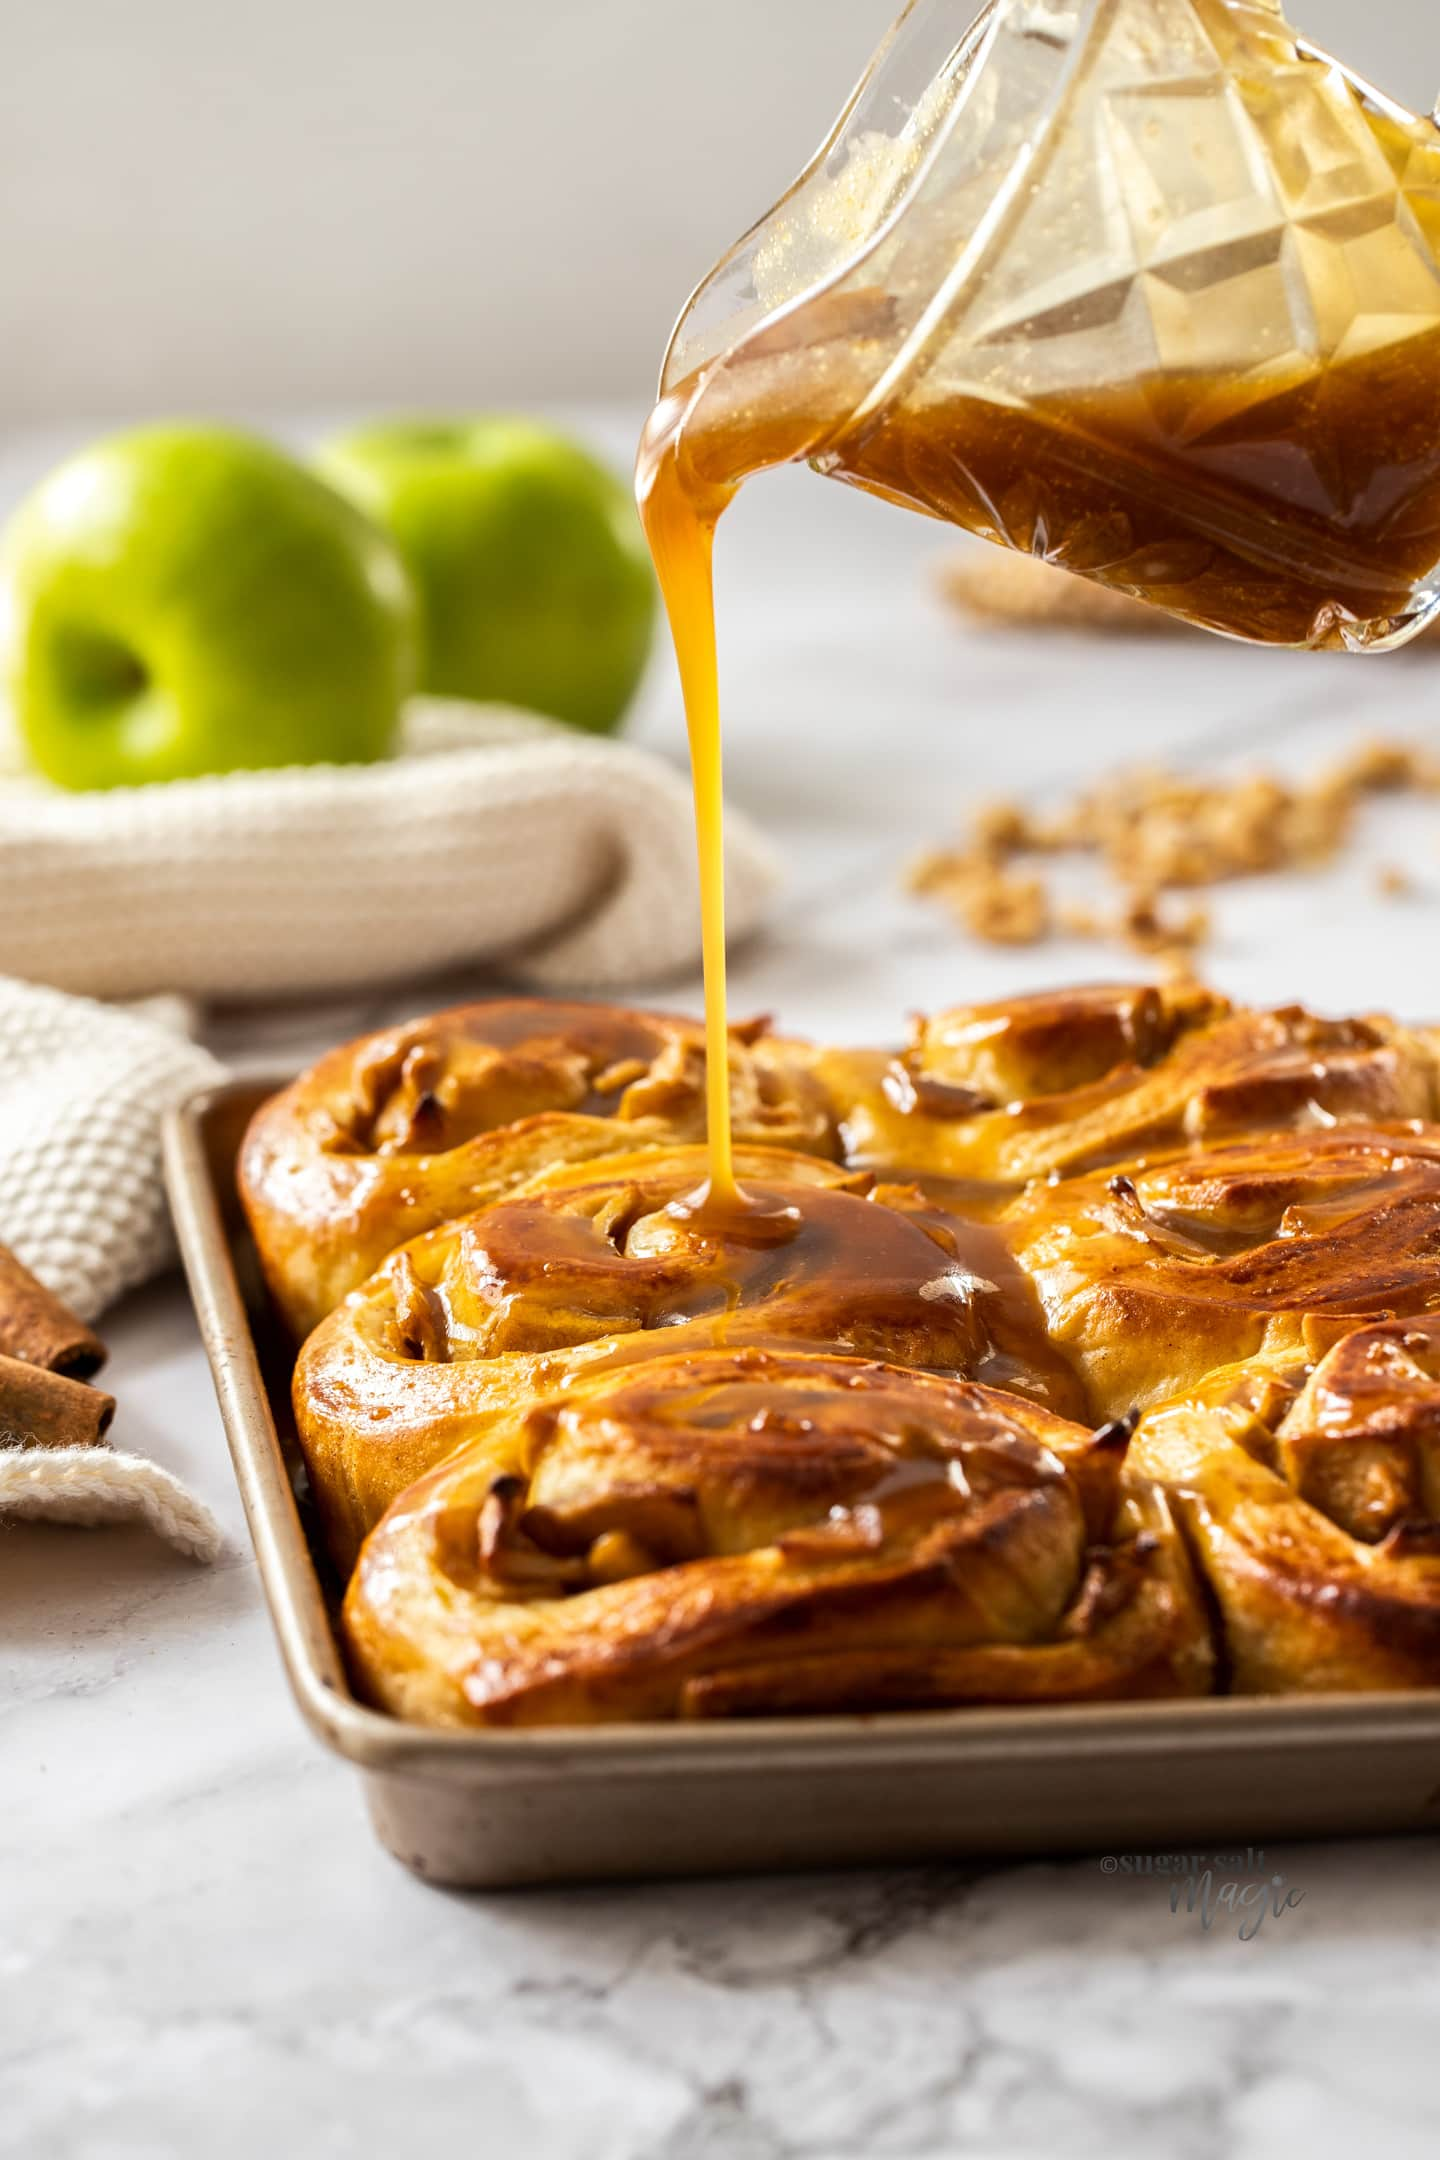 Caramel sauce being poured over cinnamon rolls